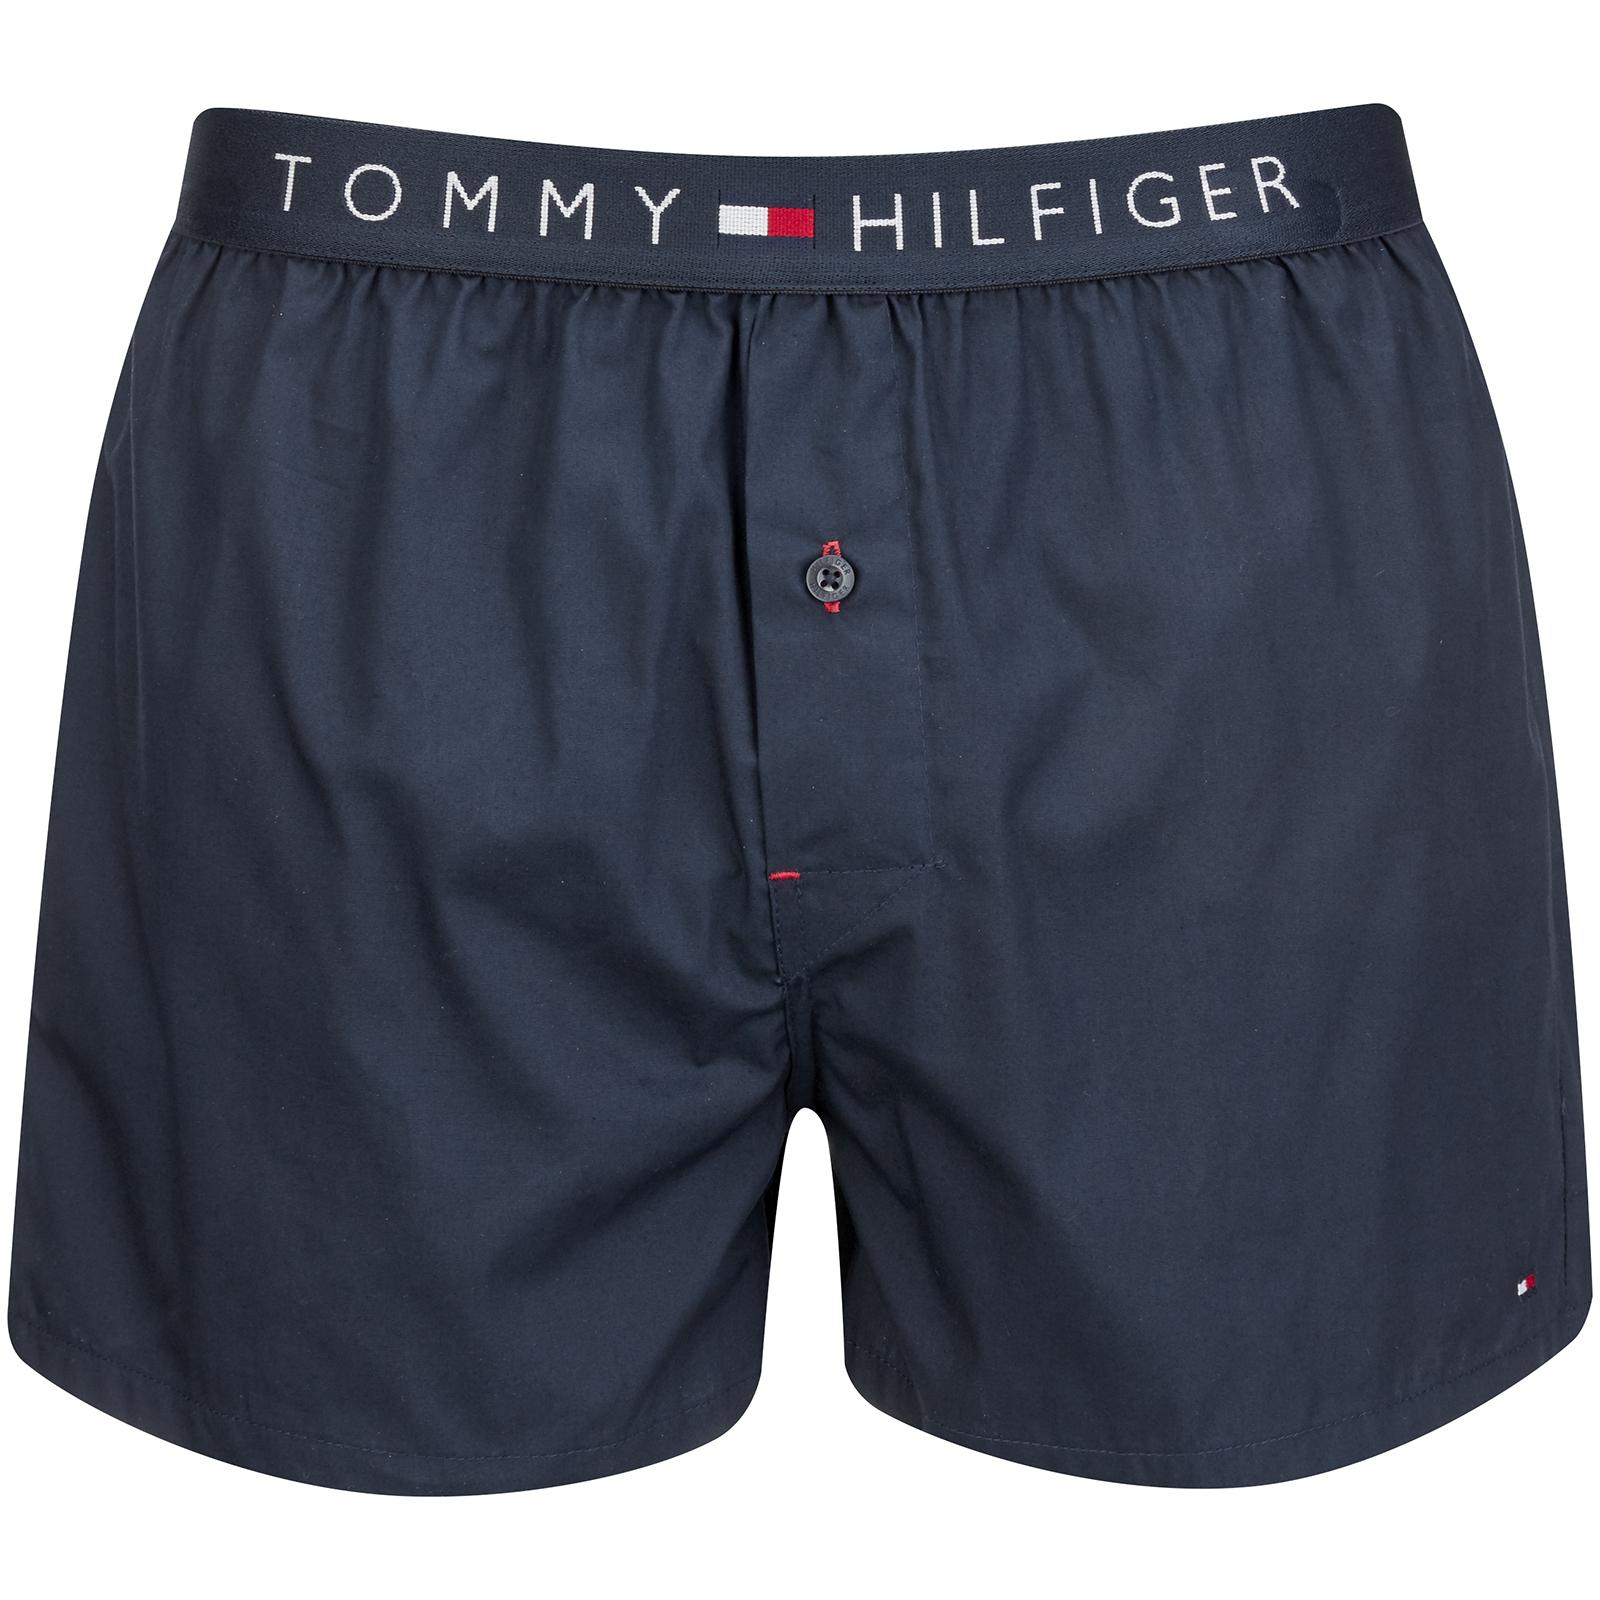 Discount Visa Payment Free Shipping Geniue Stockist Mens 2P Woven Boxer Shorts Tommy Hilfiger Cheap Sale Get Authentic Free Shipping Lowest Price Free Shipping Ebay qdtgbi4jiX